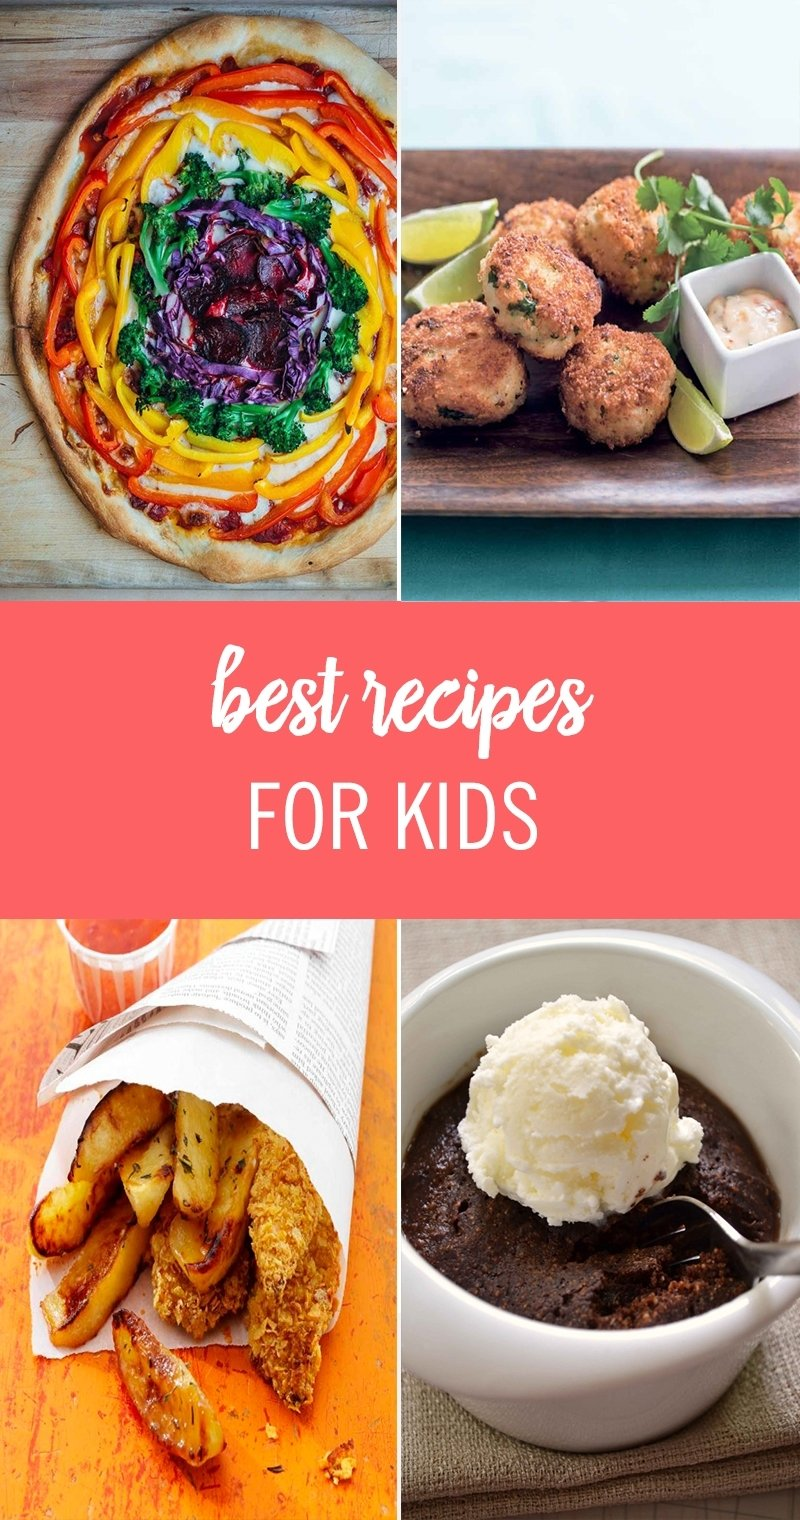 10 Nice Lunch Ideas For Picky Toddlers cooking for kids 50 best recipes for kids and picky eaters 20